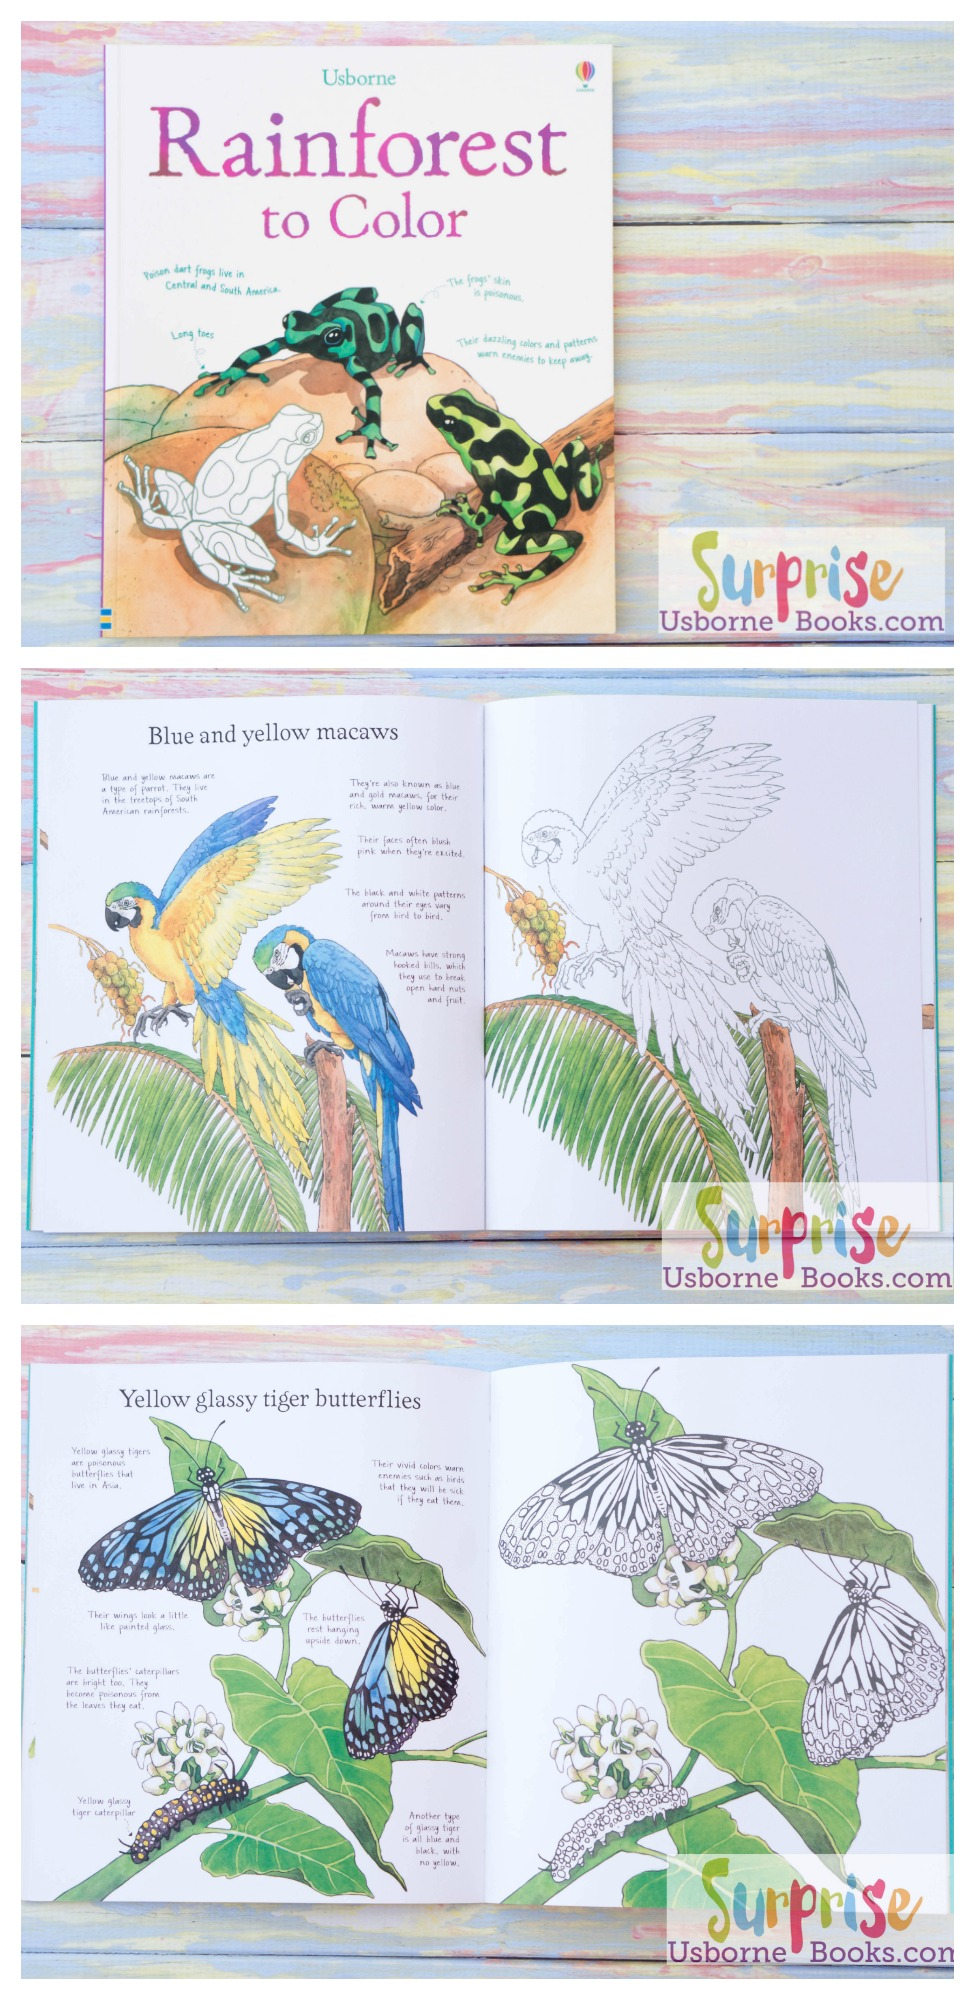 Rainforest to Color - Surprise Usborne Books